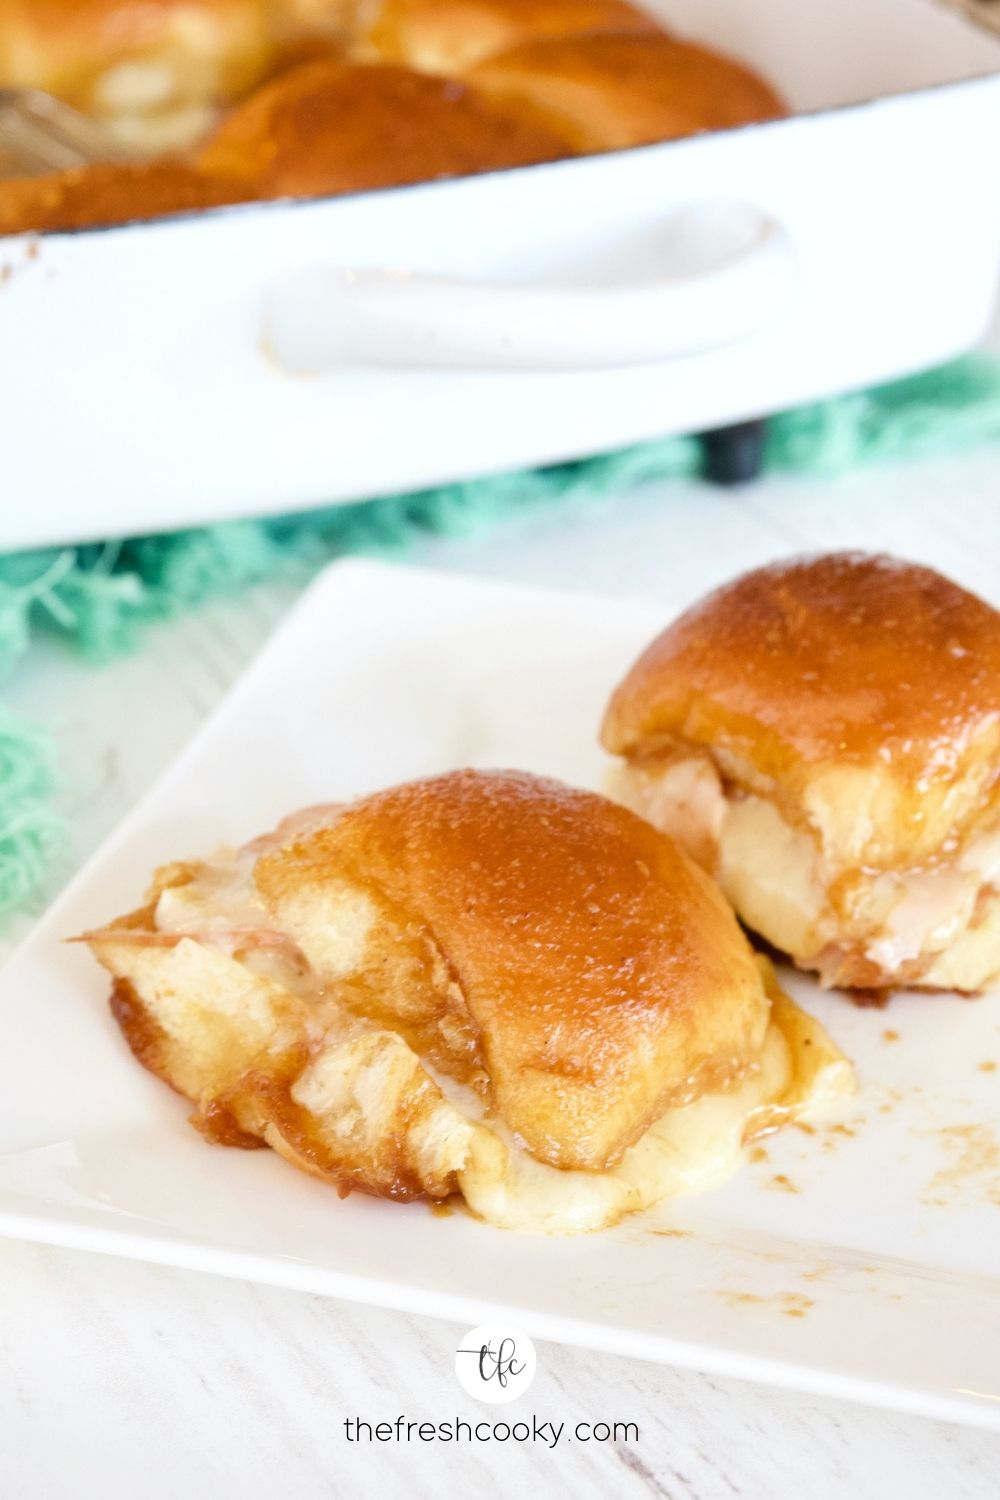 Two gooey Turkey and Cheese Sliders on white plate with casserole behind.